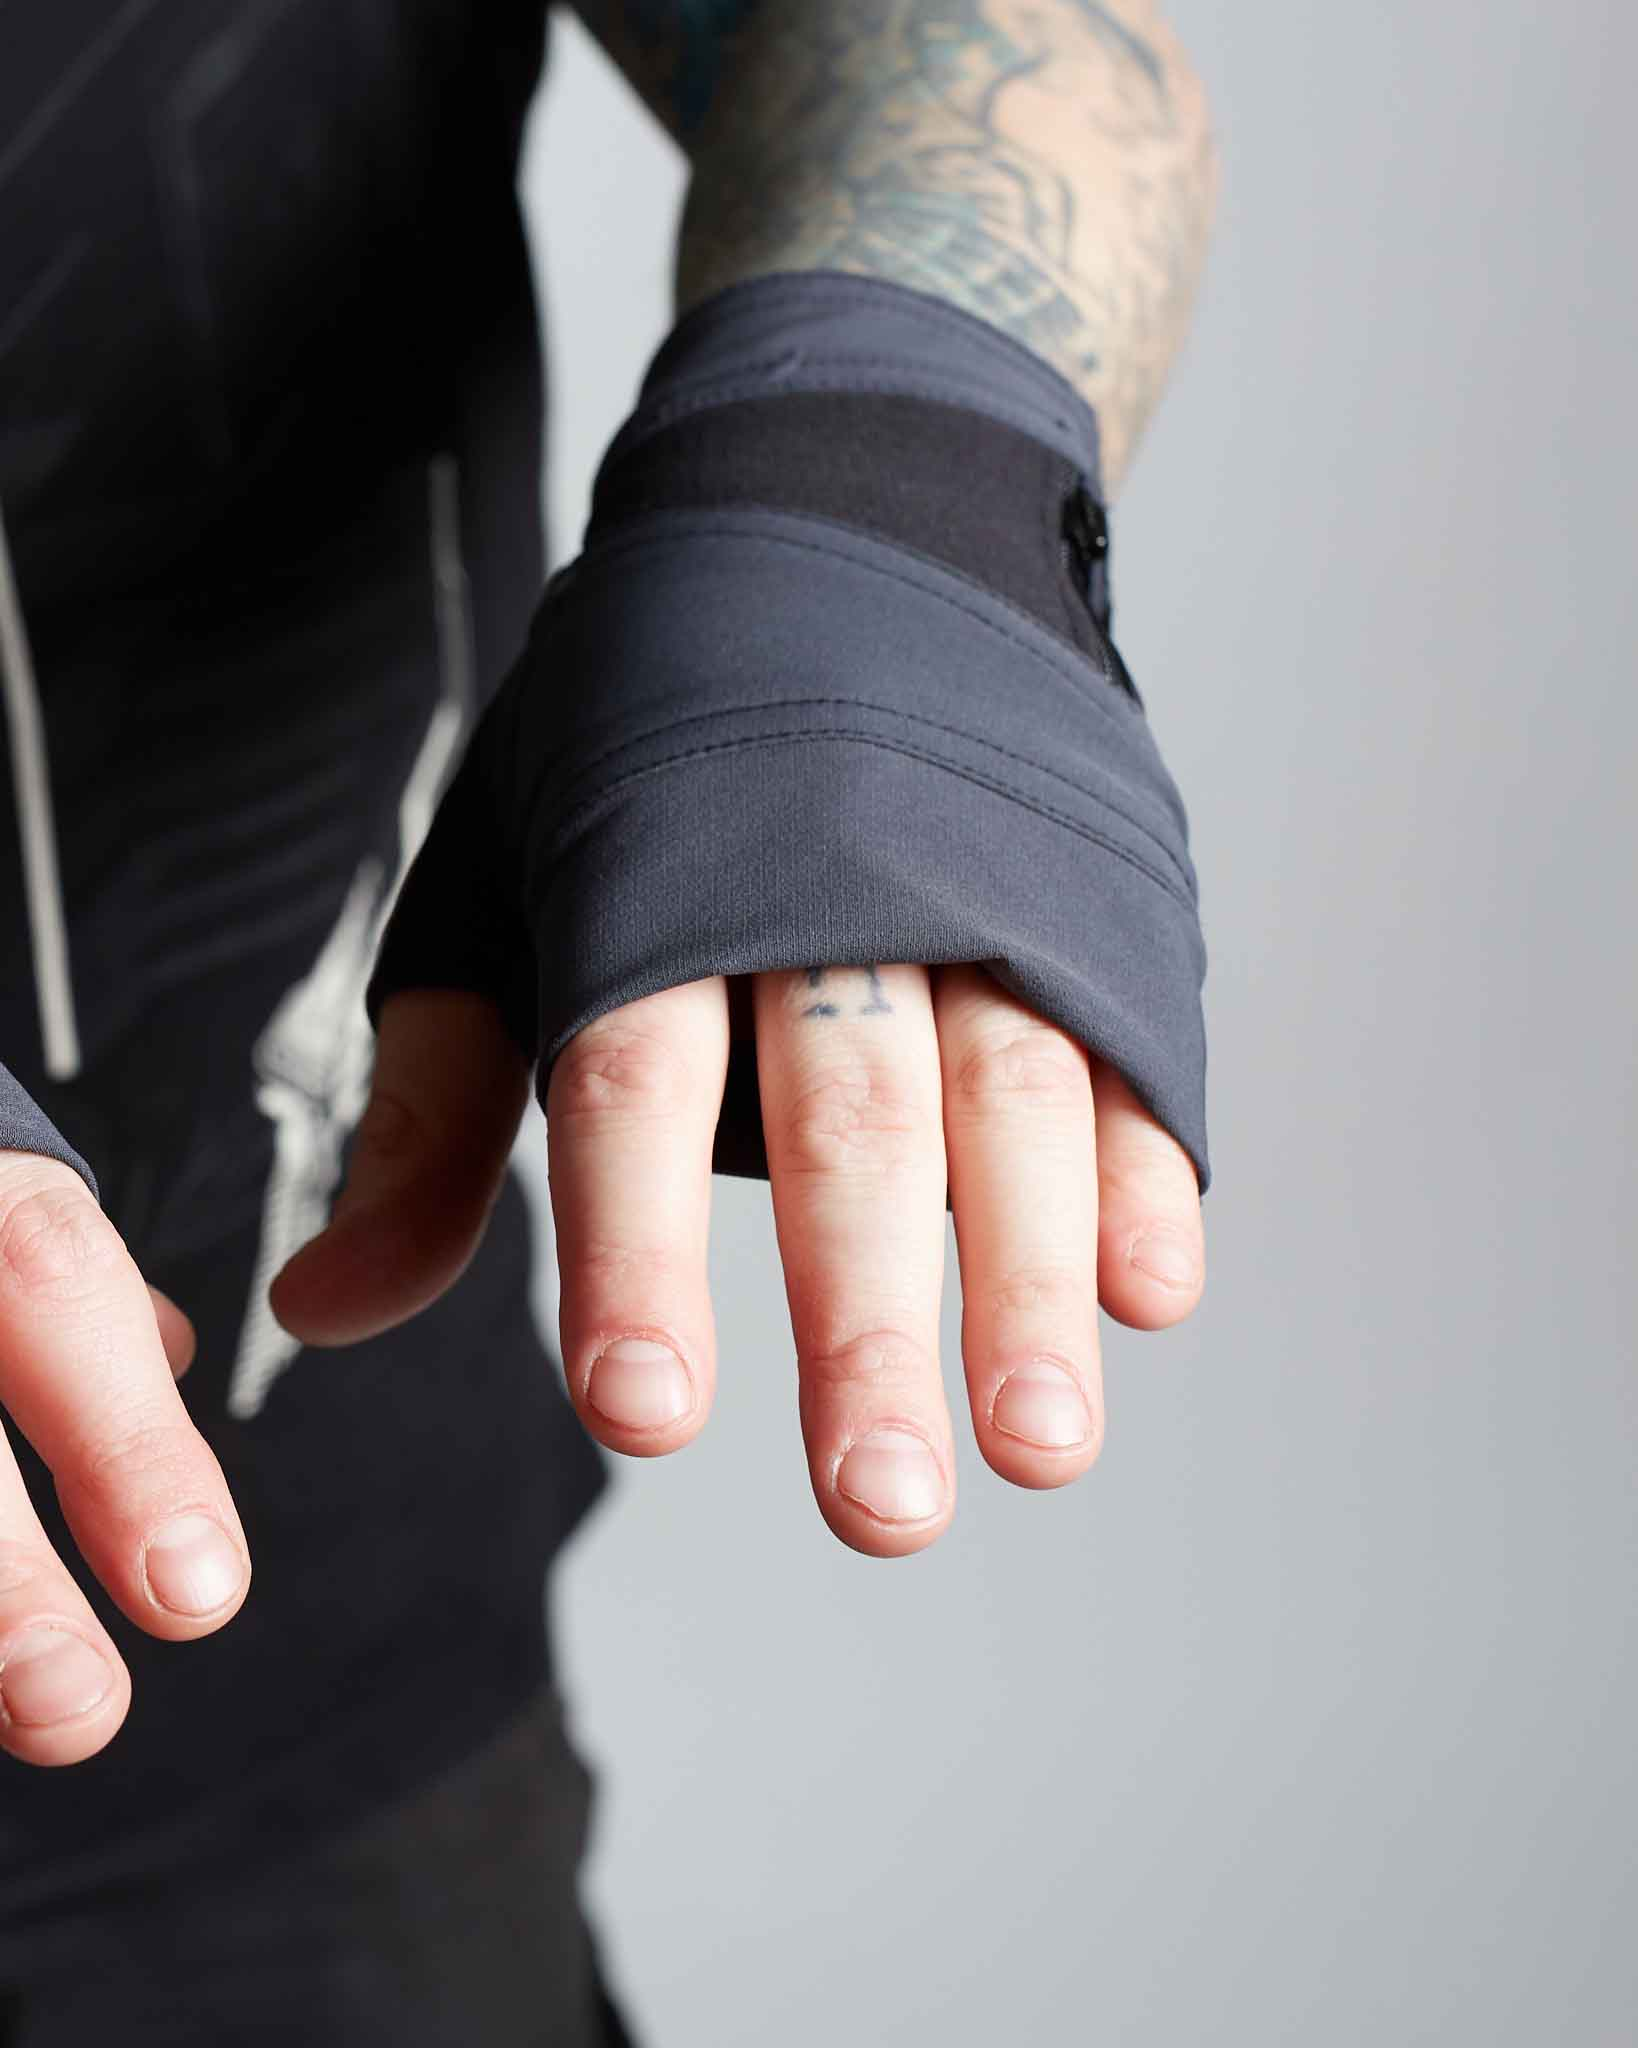 Cyberpunk style designer gloves with two tone look